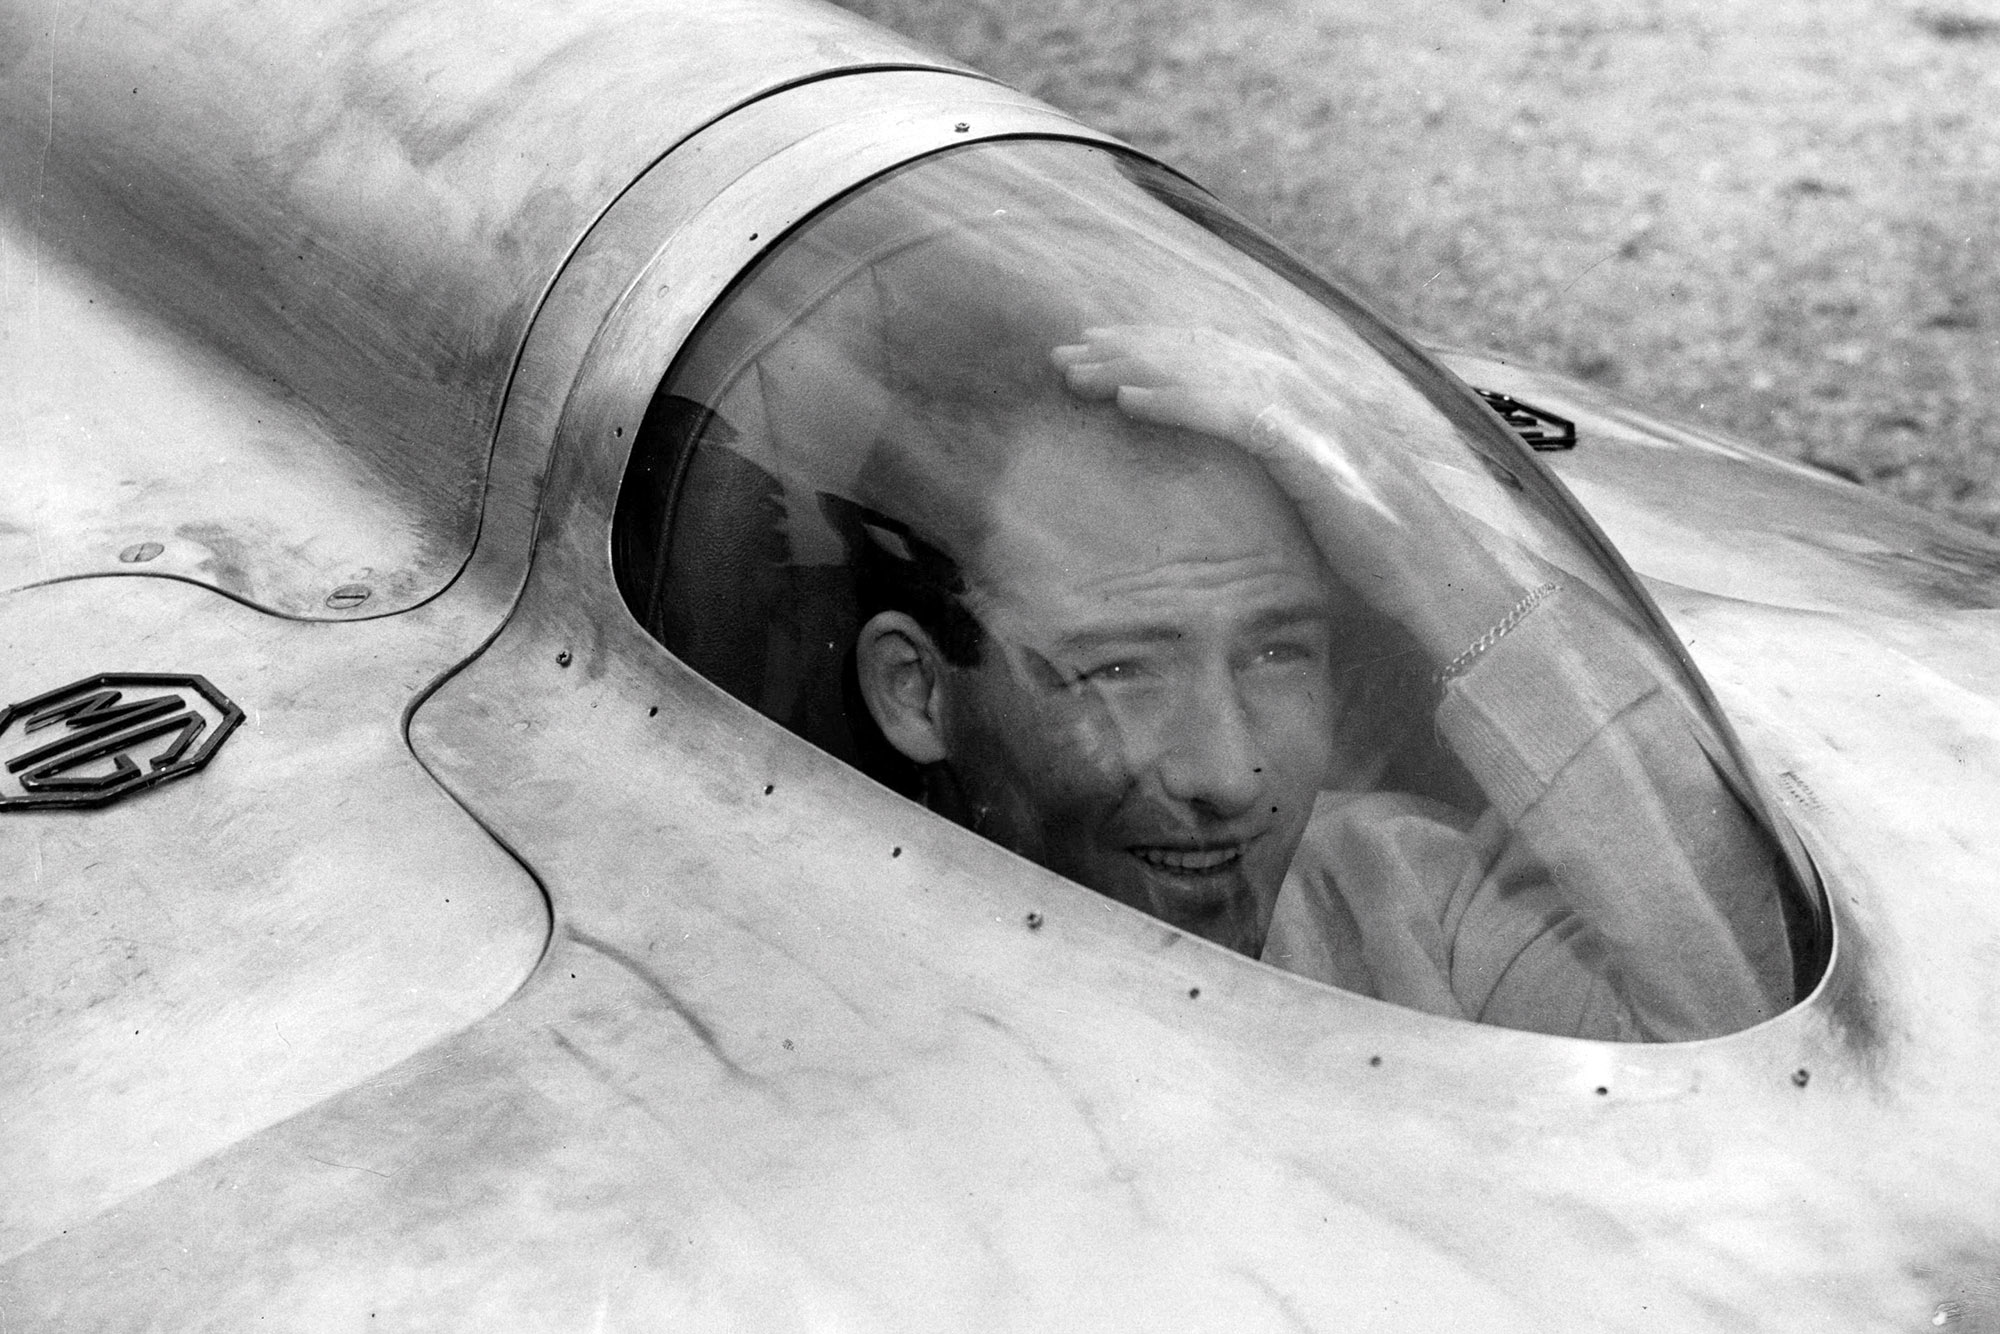 Stirling Moss in the MG EX181 on the Bonneville Salt Flats